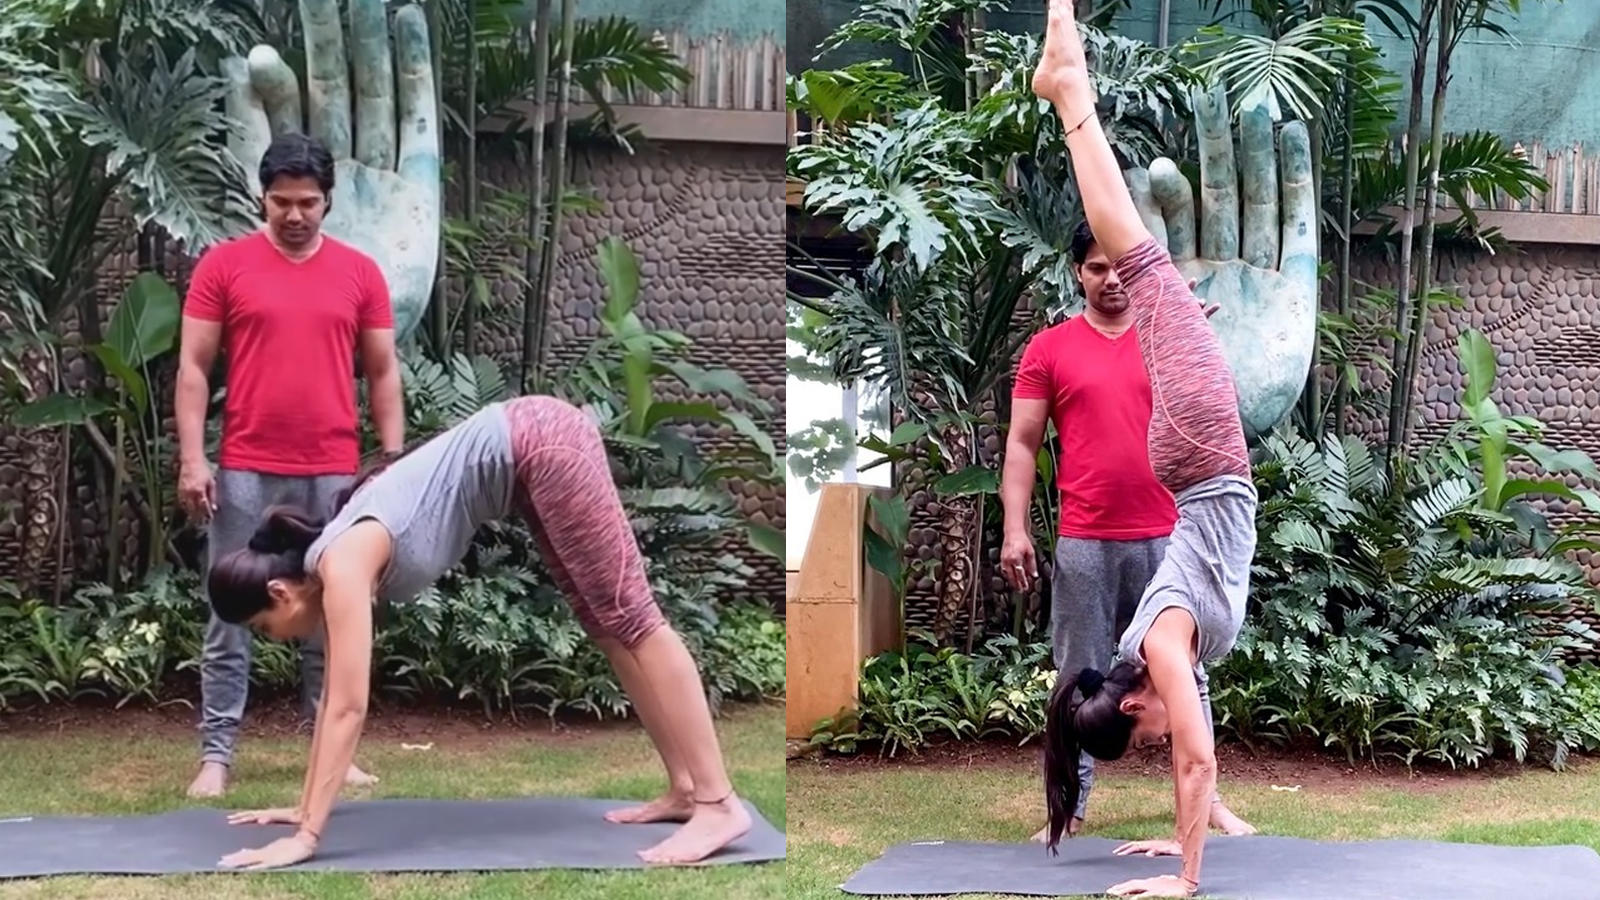 Shilpa Shetty's latest yoga video is all about fitness goals